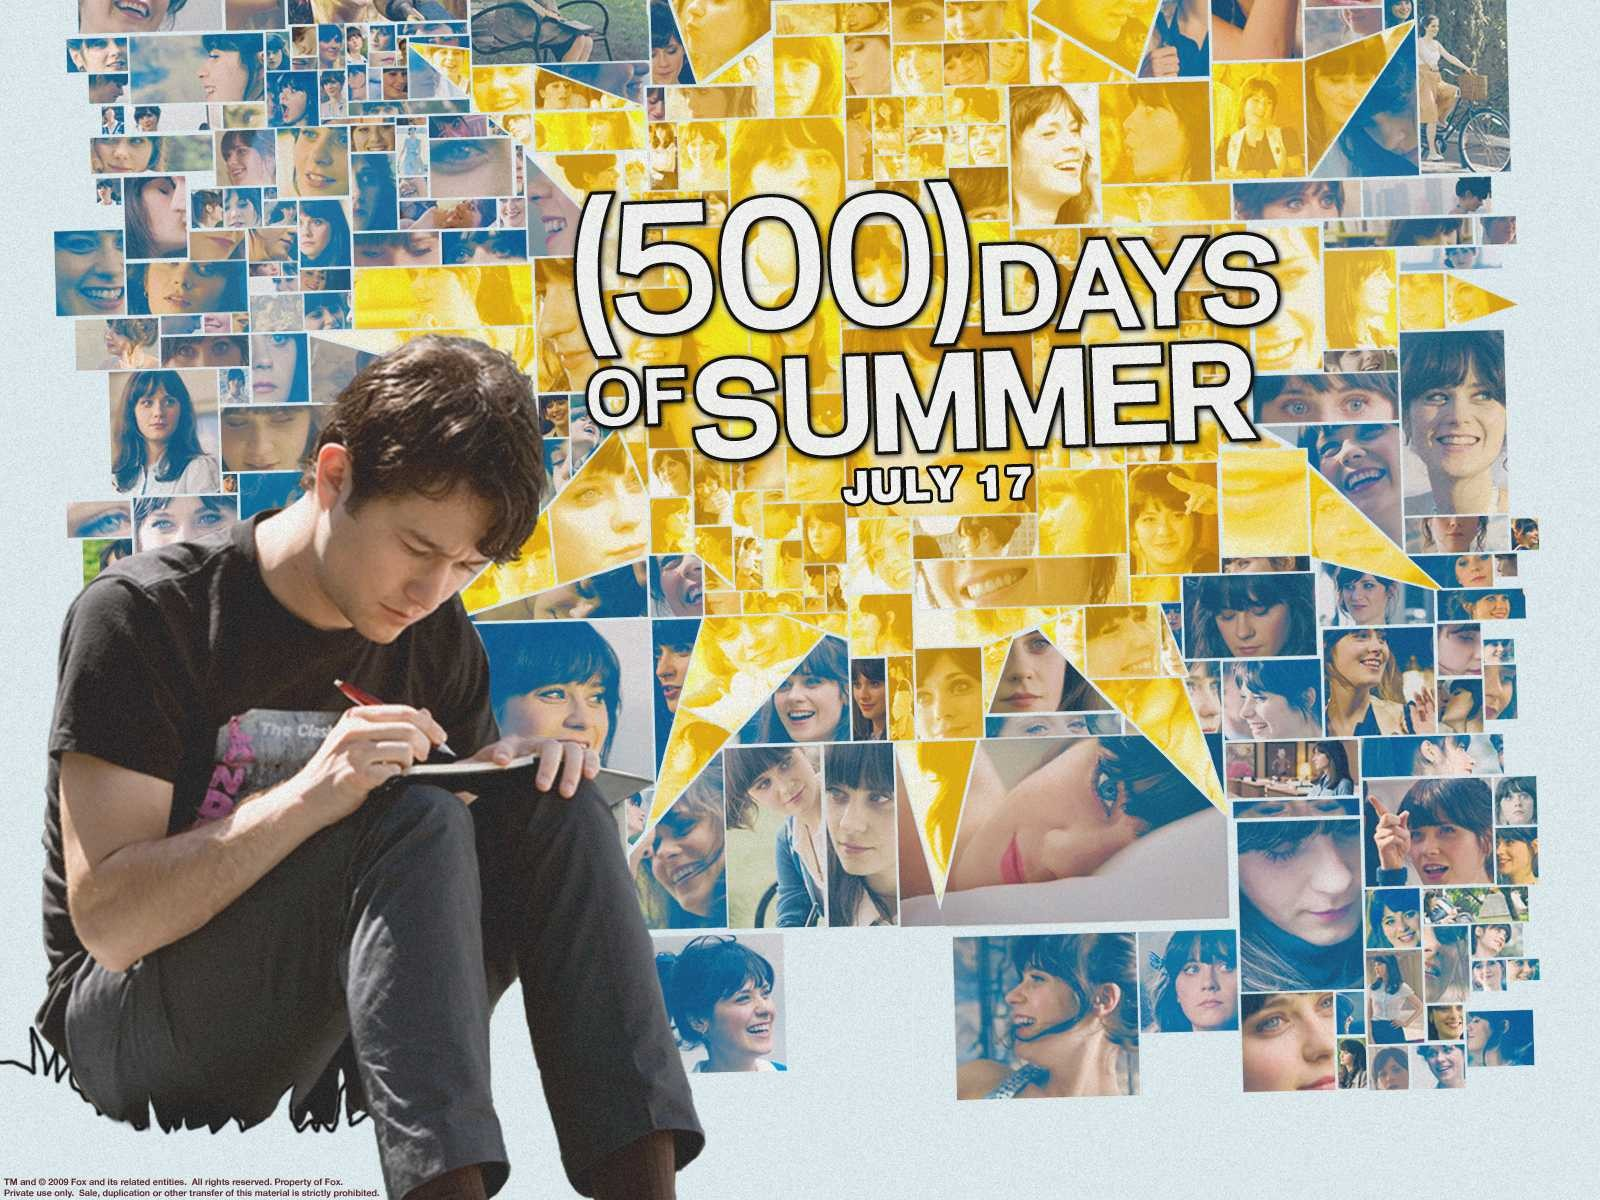 Un wallpaper del film (500) Days of Summer